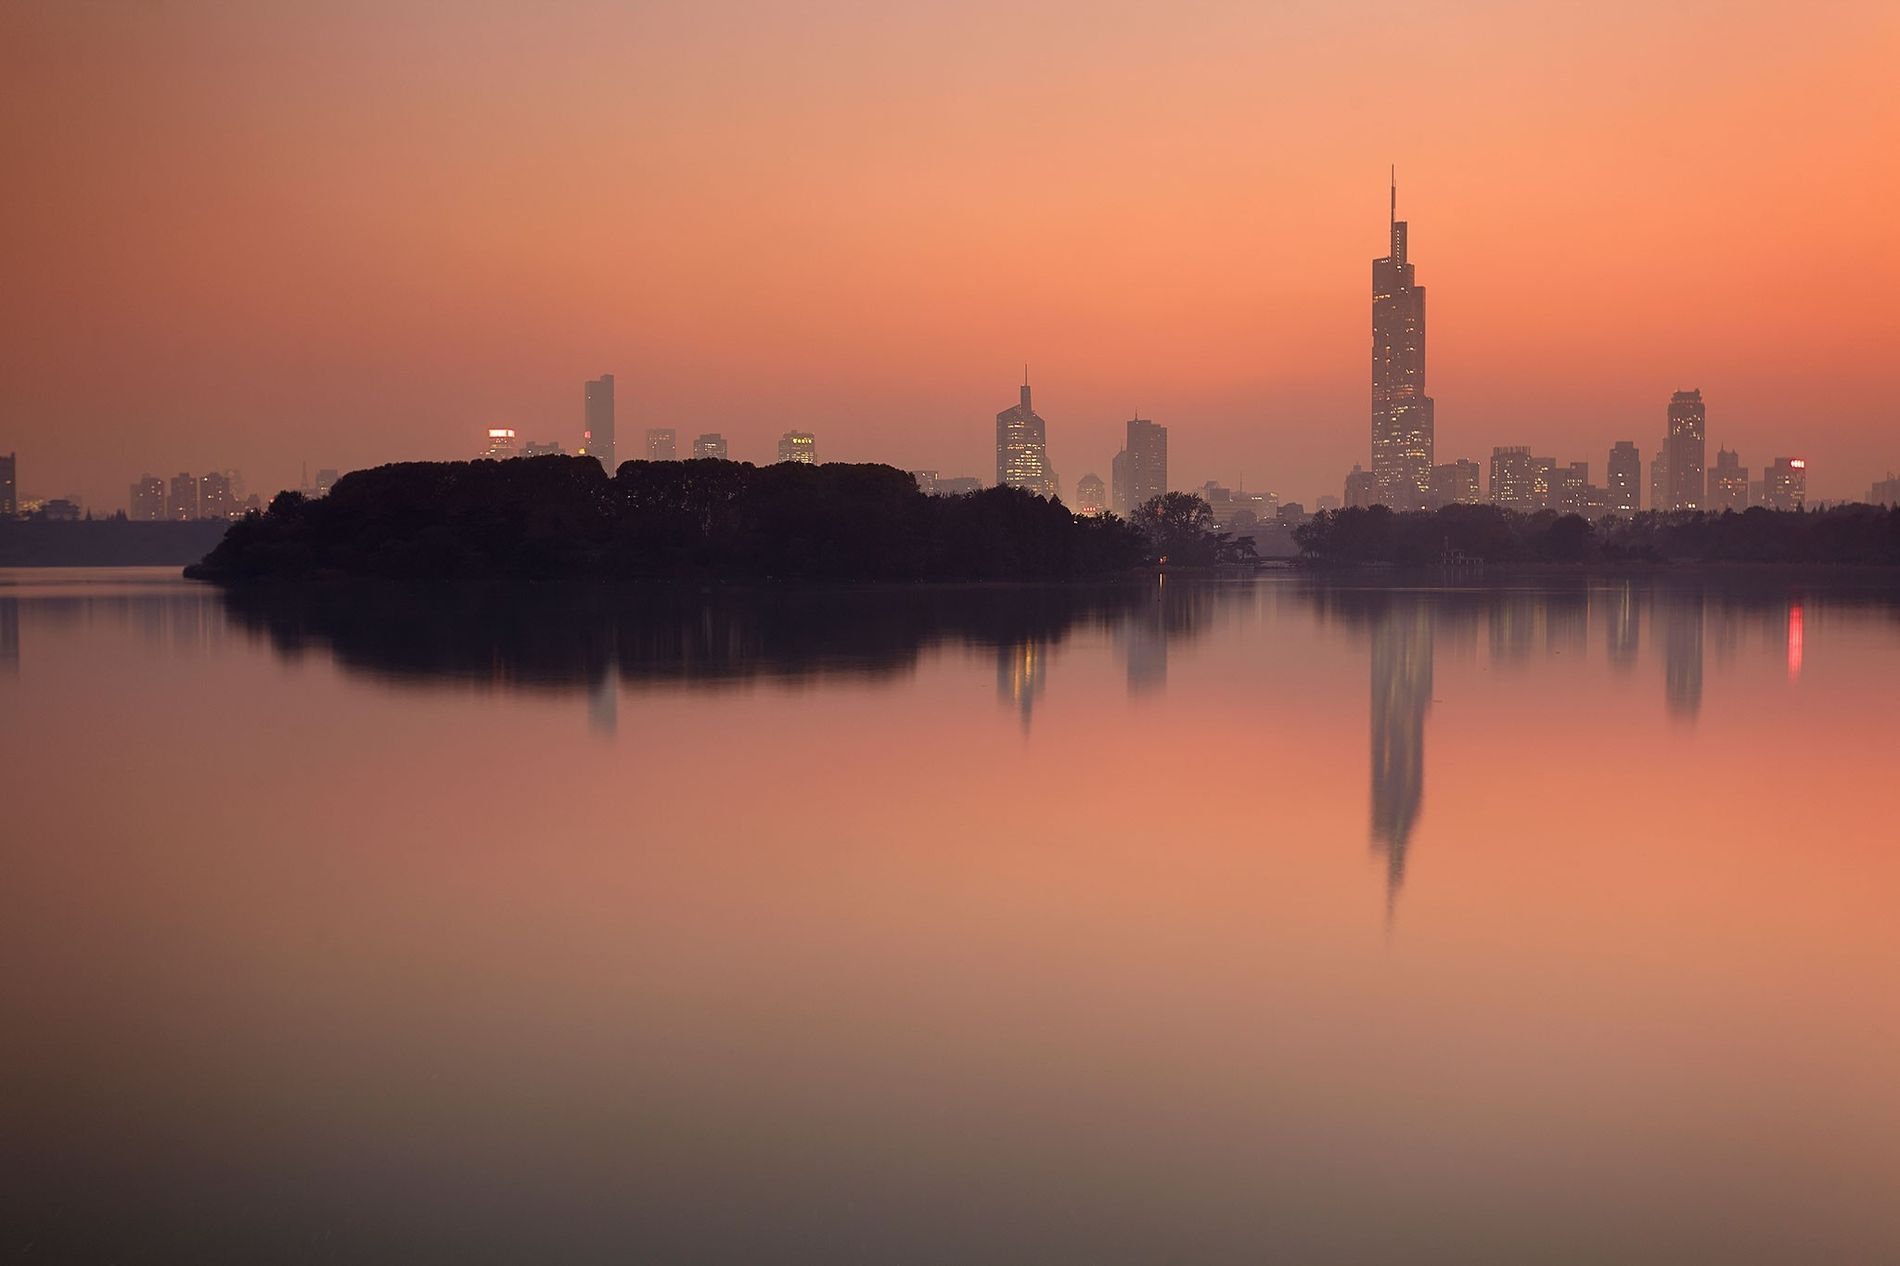 The setting sun frames the Nanjing skyline towering over Ziwu Lake in China.